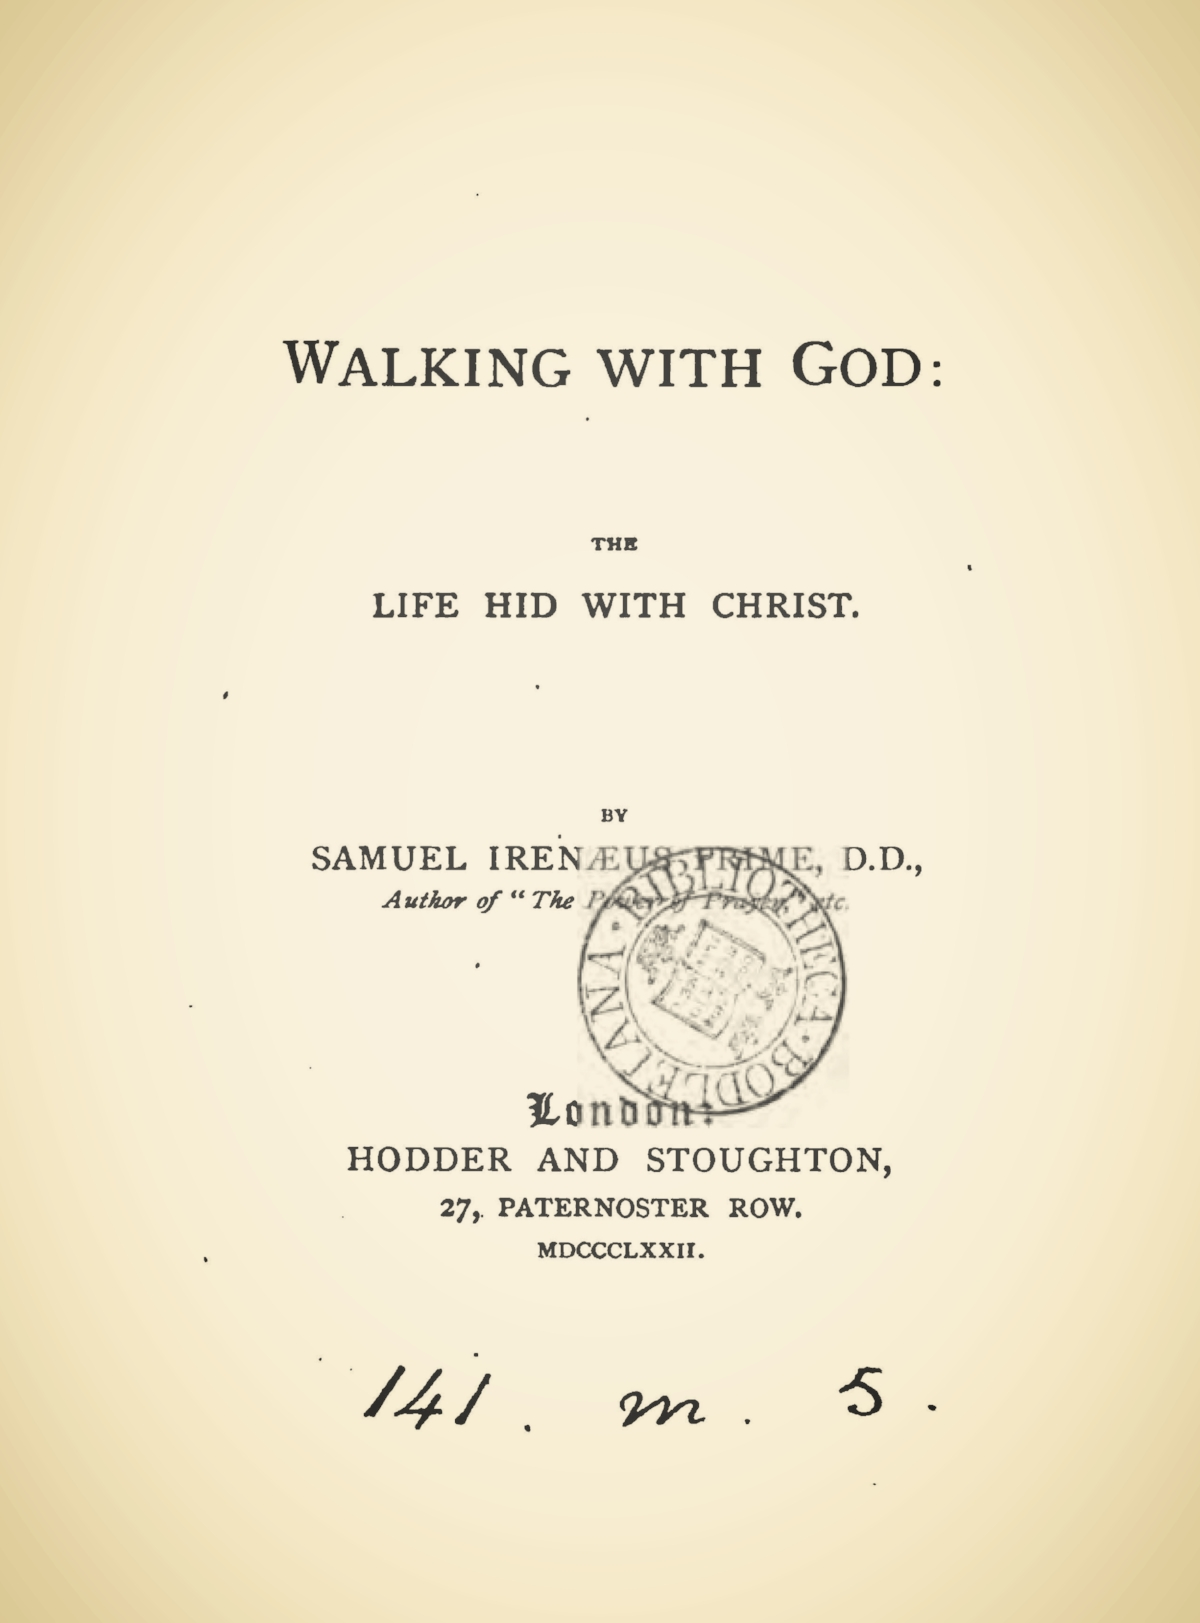 Prime, Samuel Irenaeus, Walking With God Title Page.jpg